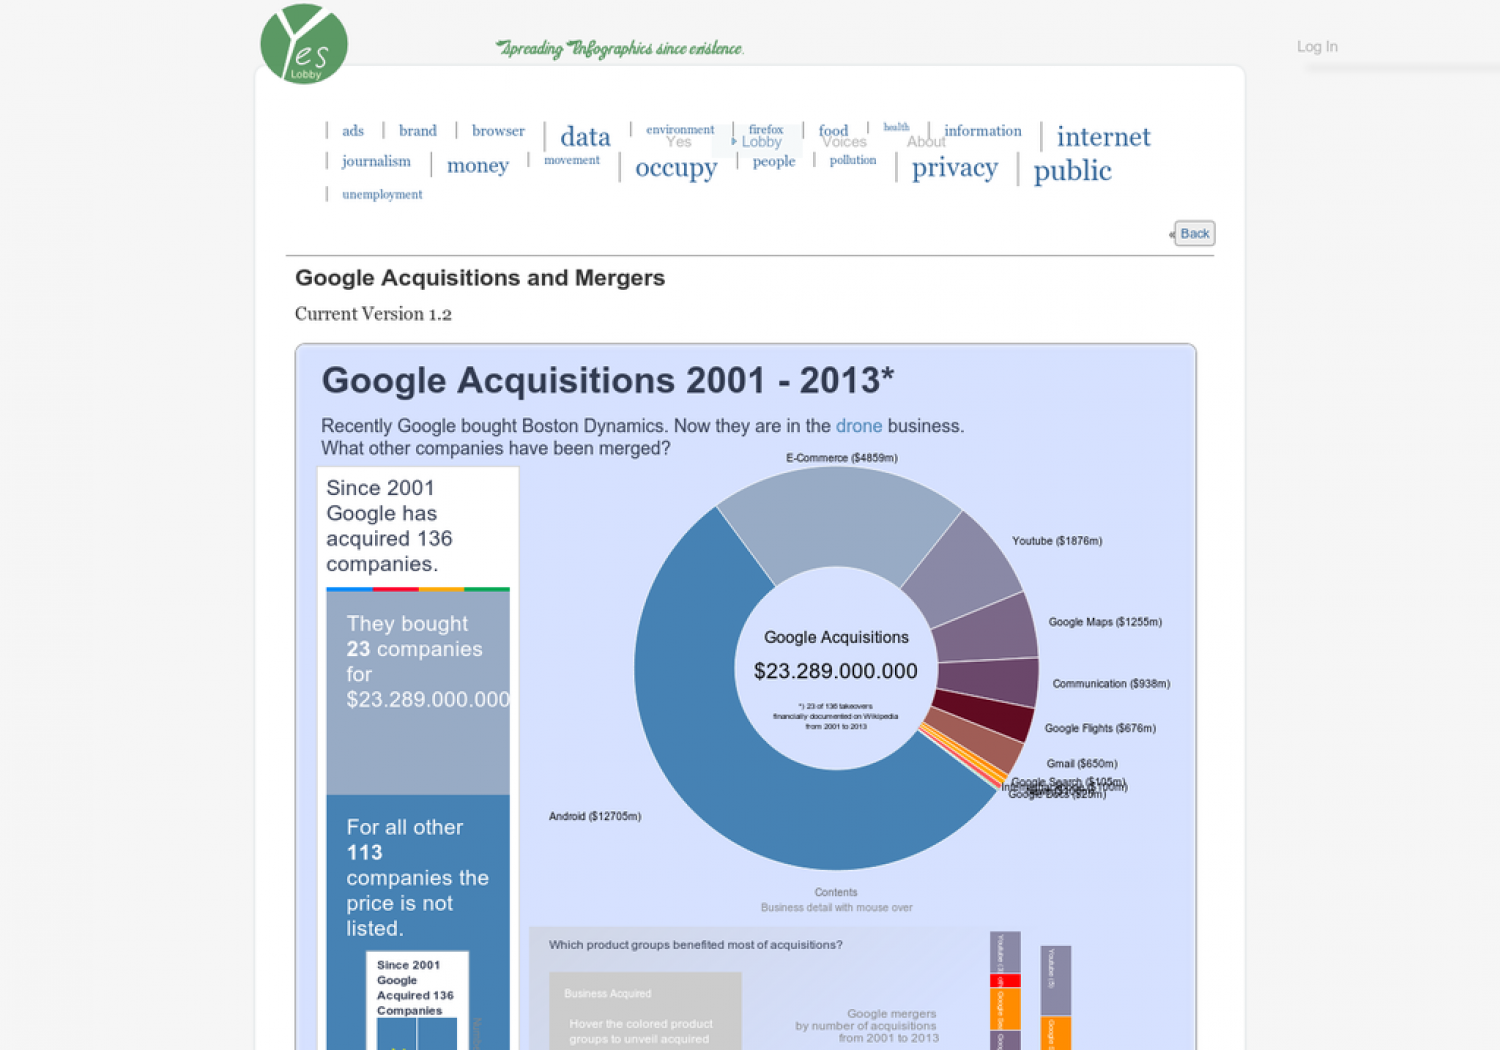 Google Acquisitions and Mergers 2001-2013 Infographic